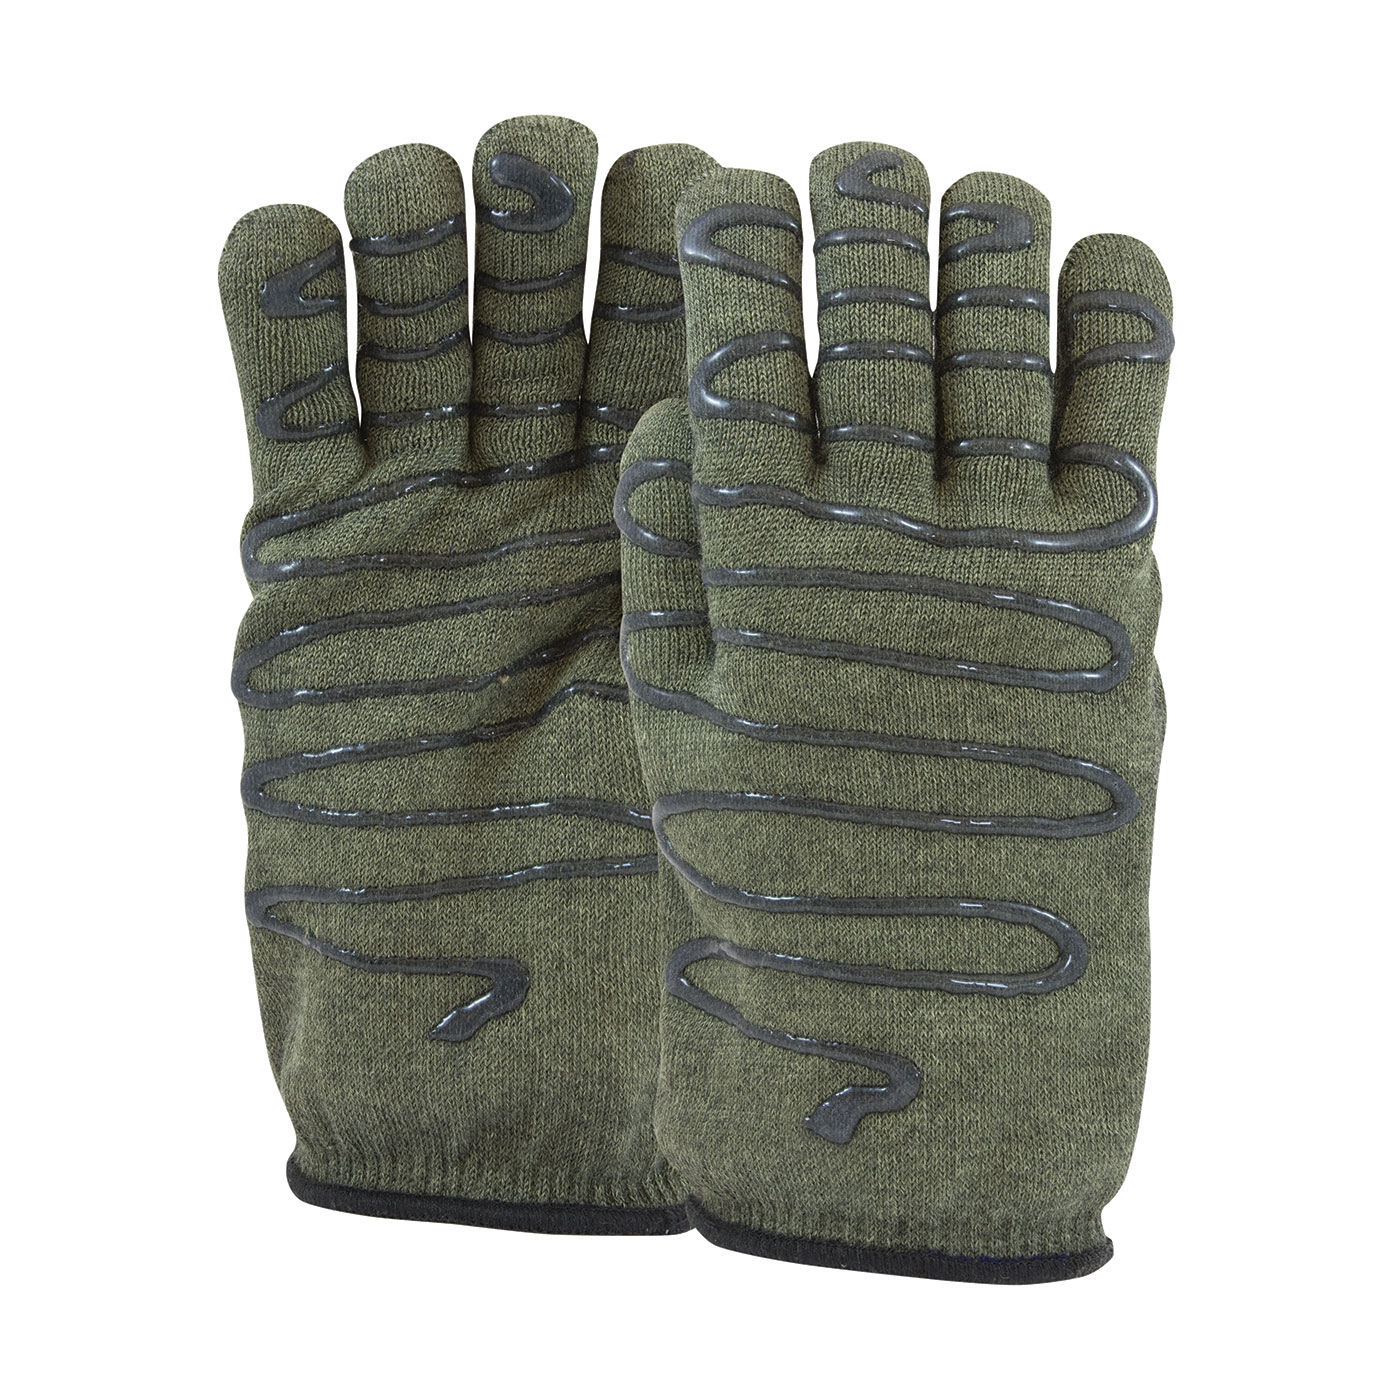 #43-851 PIP® Kut Gard®  Kevlar® / Preox Seamless Knit Hot Mill Glove with Cotton Liner and Double-Sided SilaGrip™ Coating